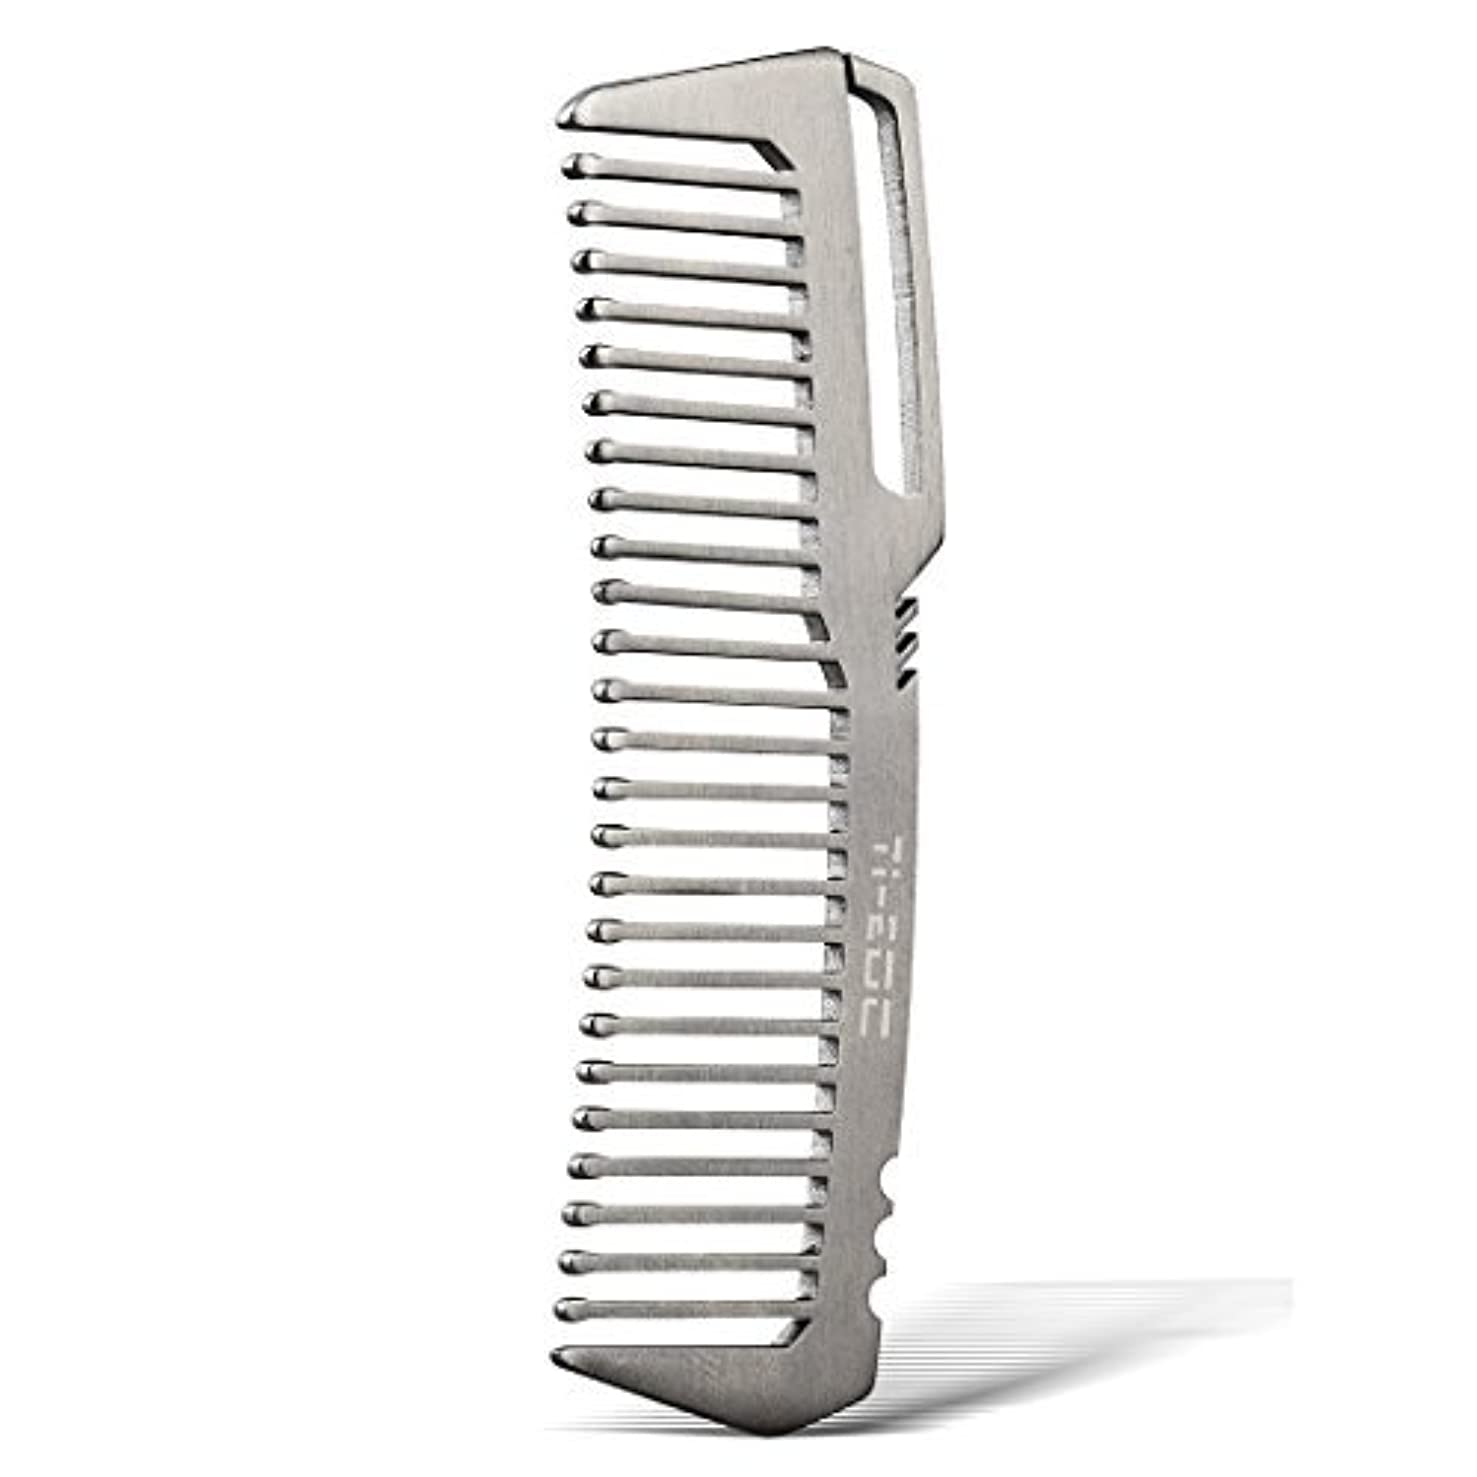 プログラム洞察力マルクス主義TI-EDC Titanium Hair Beared Comb Handmade Premium Eco-friendly Durable Pocket Wallet Comb [並行輸入品]